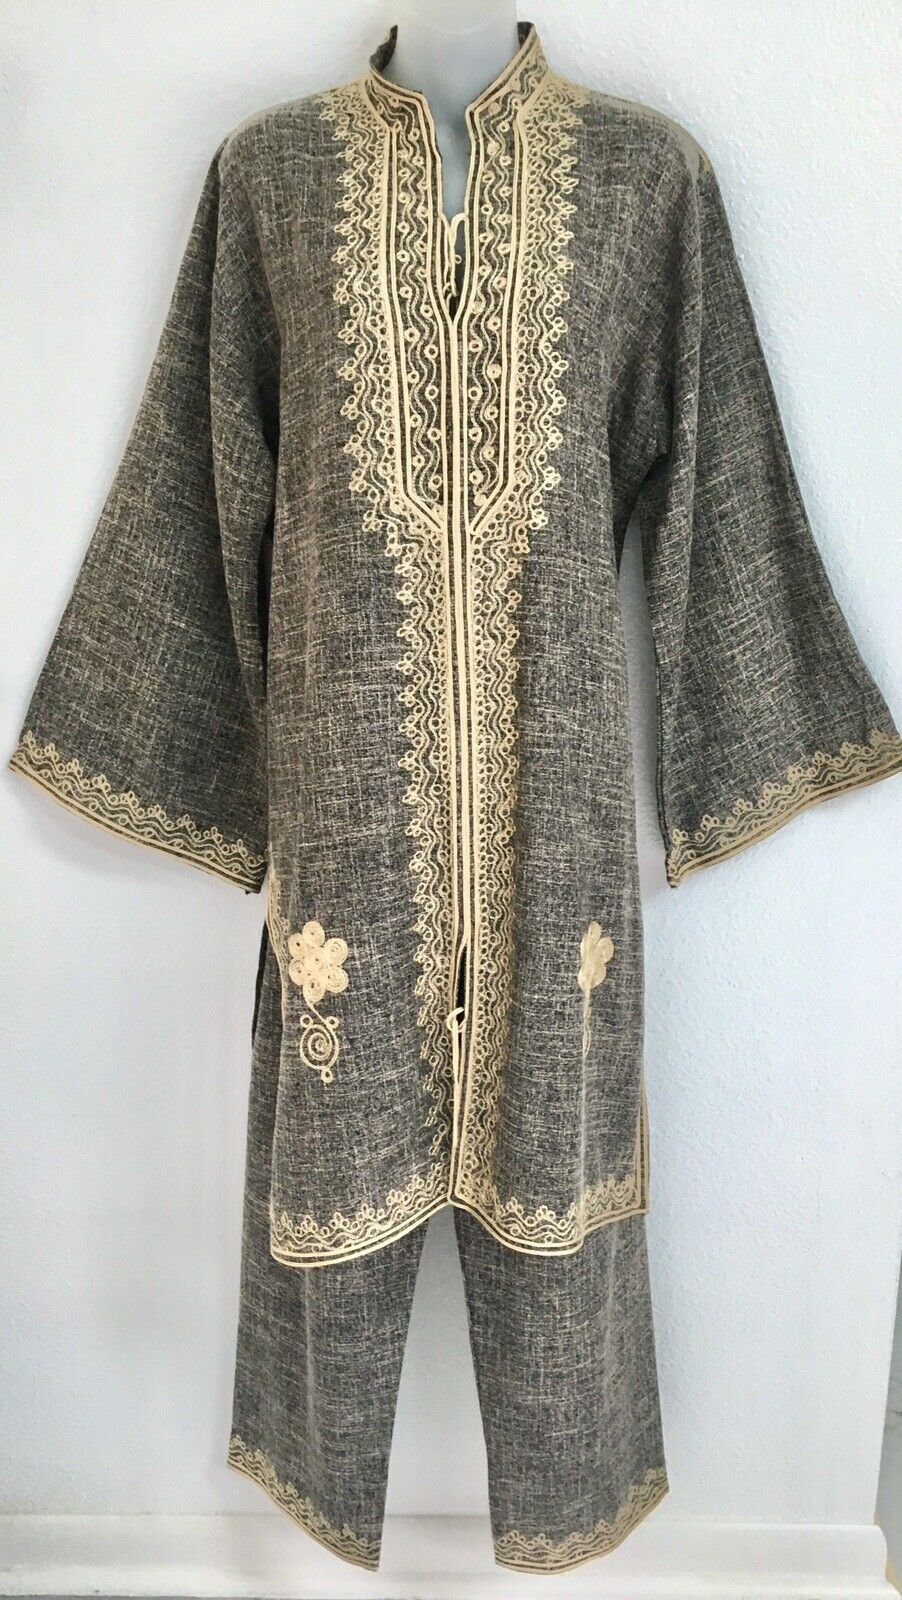 STUNNING MgoldCCAN DJELLABA W PANTS SIZE MED NWOT